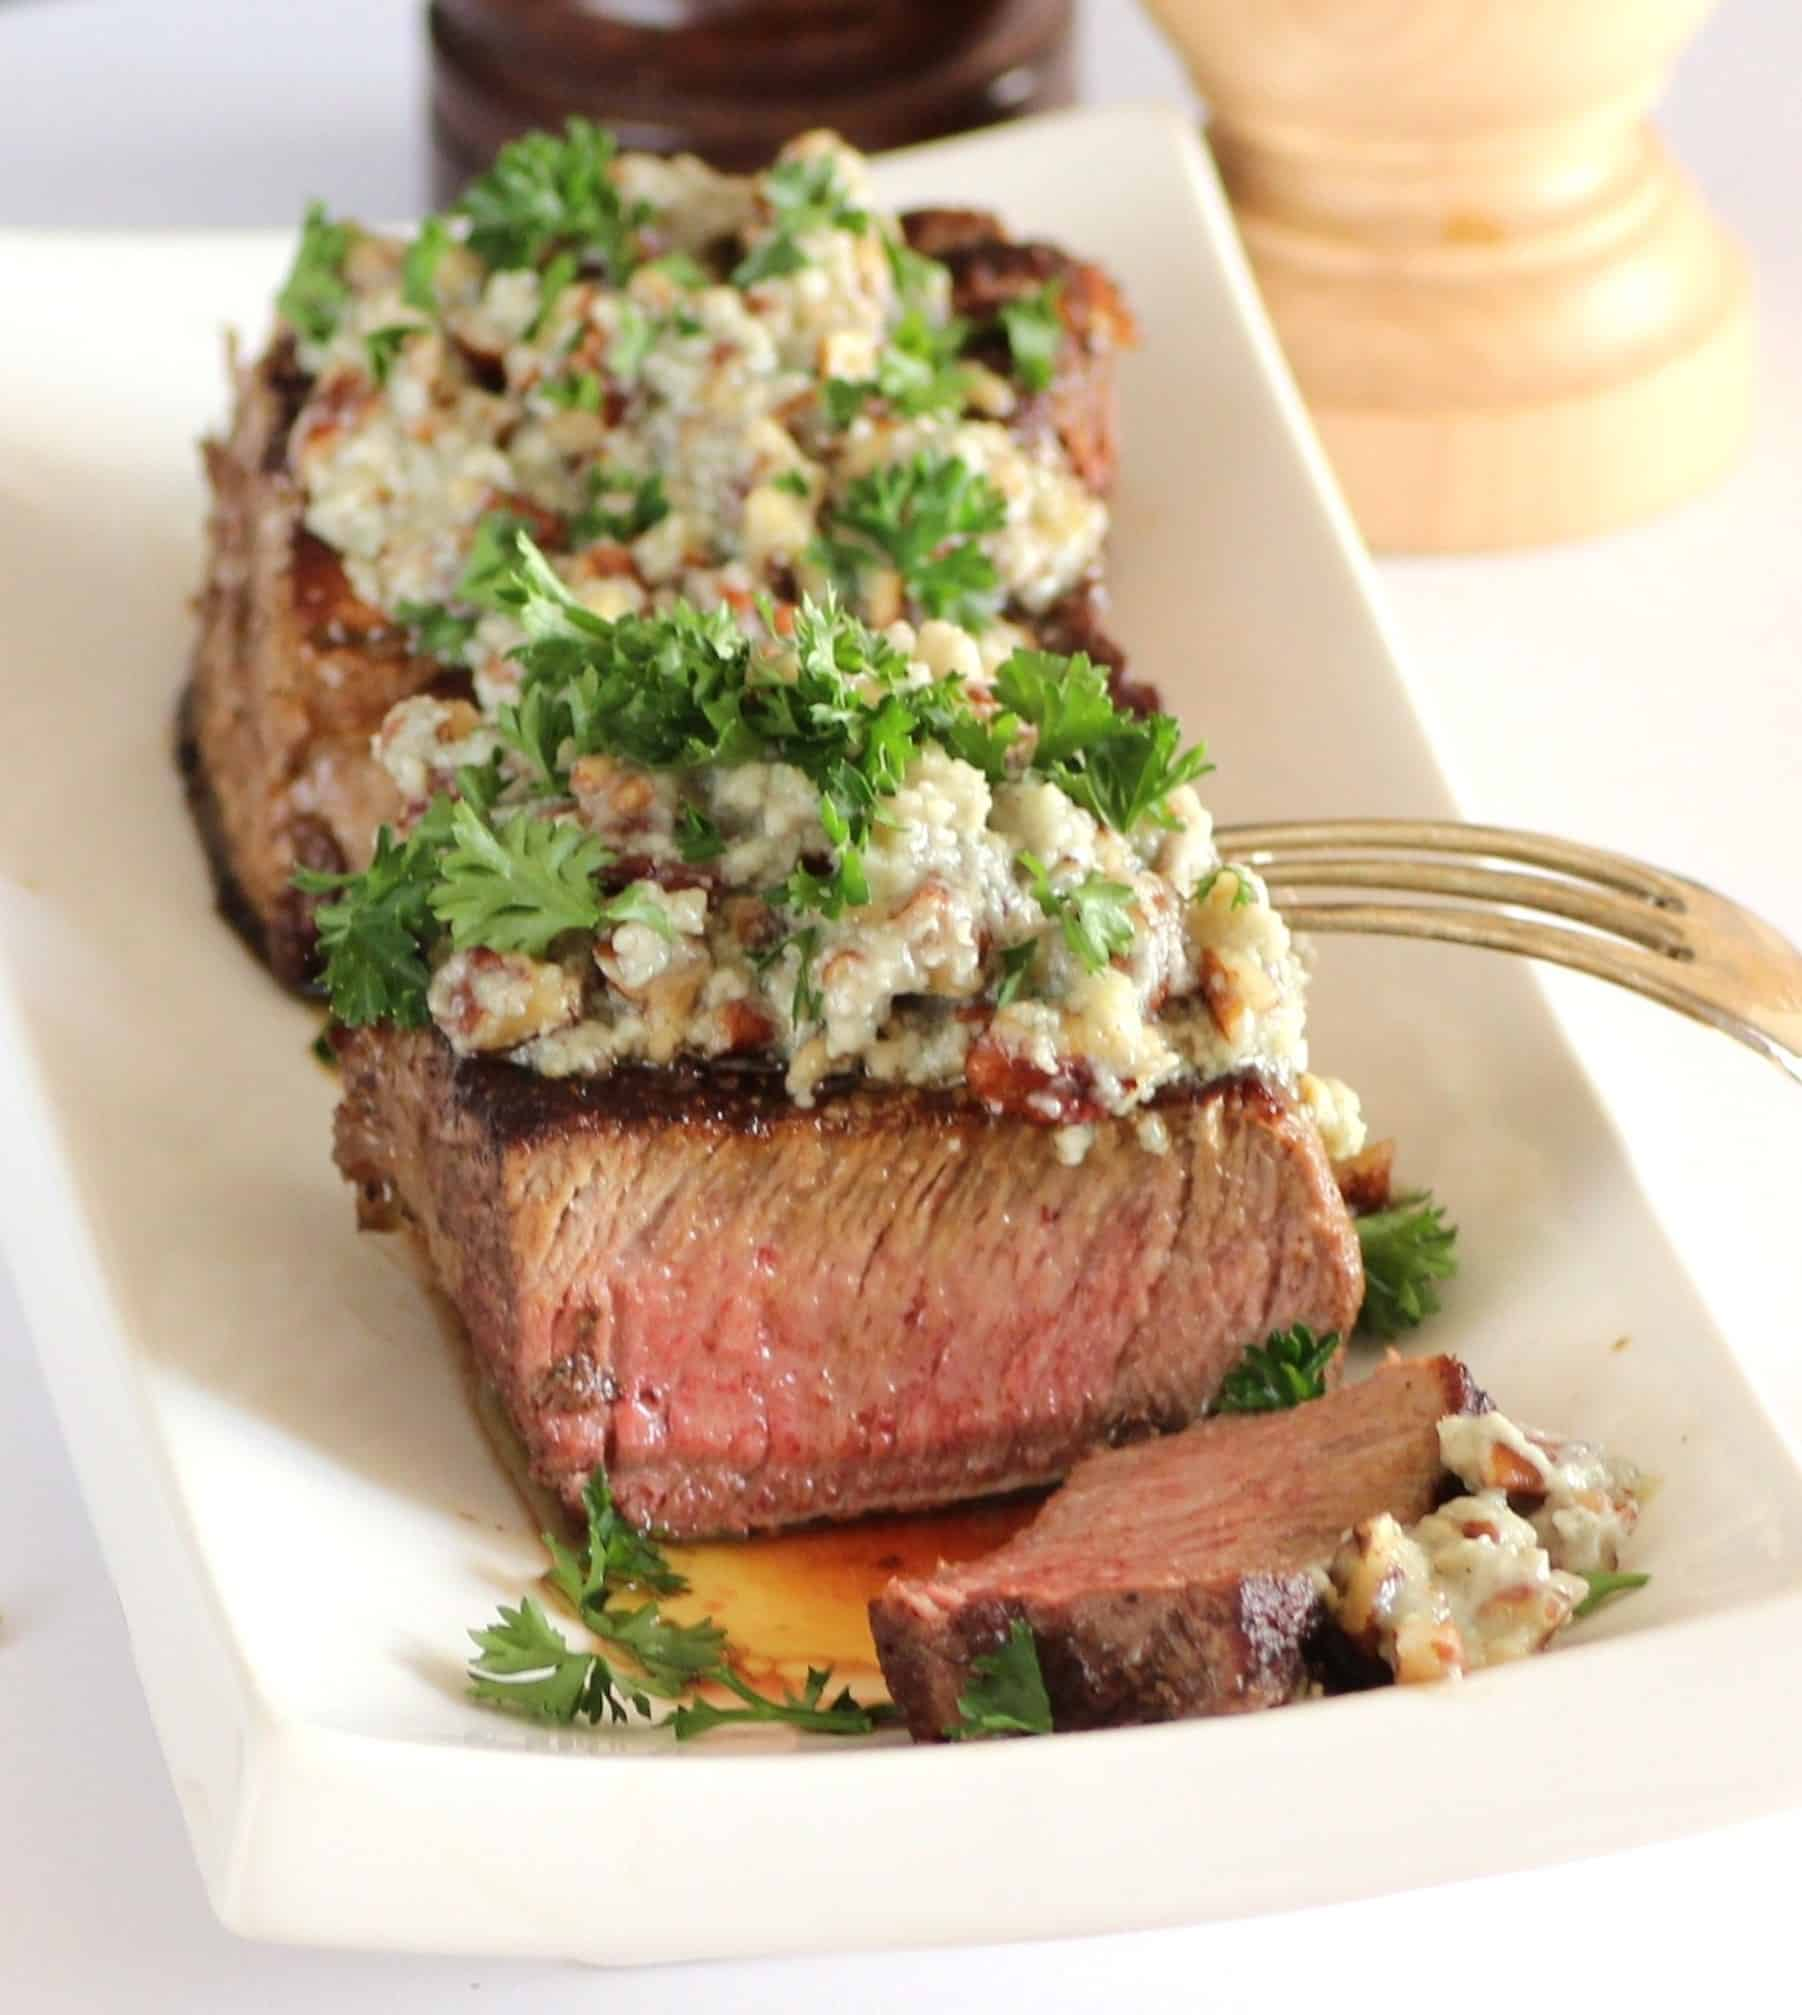 Beef tenderloin with stilton pecan butter for dishes in 5 ingredients or less sundaysupper beef tenderloin with stilton pecan butter for dishes in 5 ingredients or less sundaysupper forumfinder Image collections